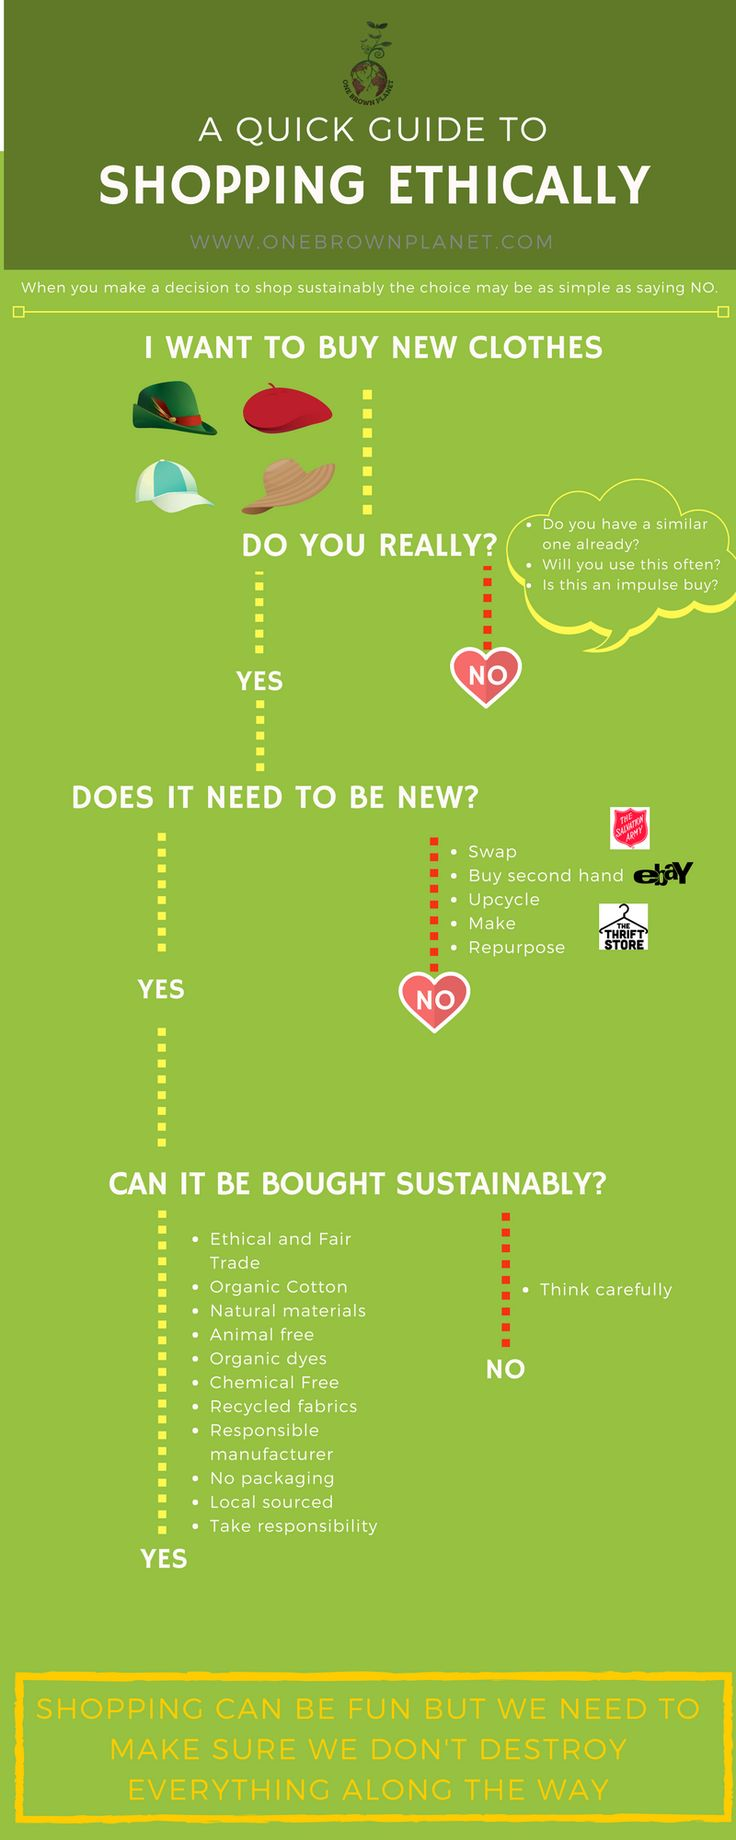 Fast fashion today is the world's 2nd most polluting industry. Americans waste almost 40 kgs of textiles every year.  A staggering 400% increase from 20 years ago. This infographic shows a better way to think about your next purchase.   So, when you're in the mood for new clothes, take a second, think about the impact first.  Sustainable fashion is possible, first we need to reduce what we buy, then change the way we buy it. Check out how we're helping by changing the way we buy our clothes.